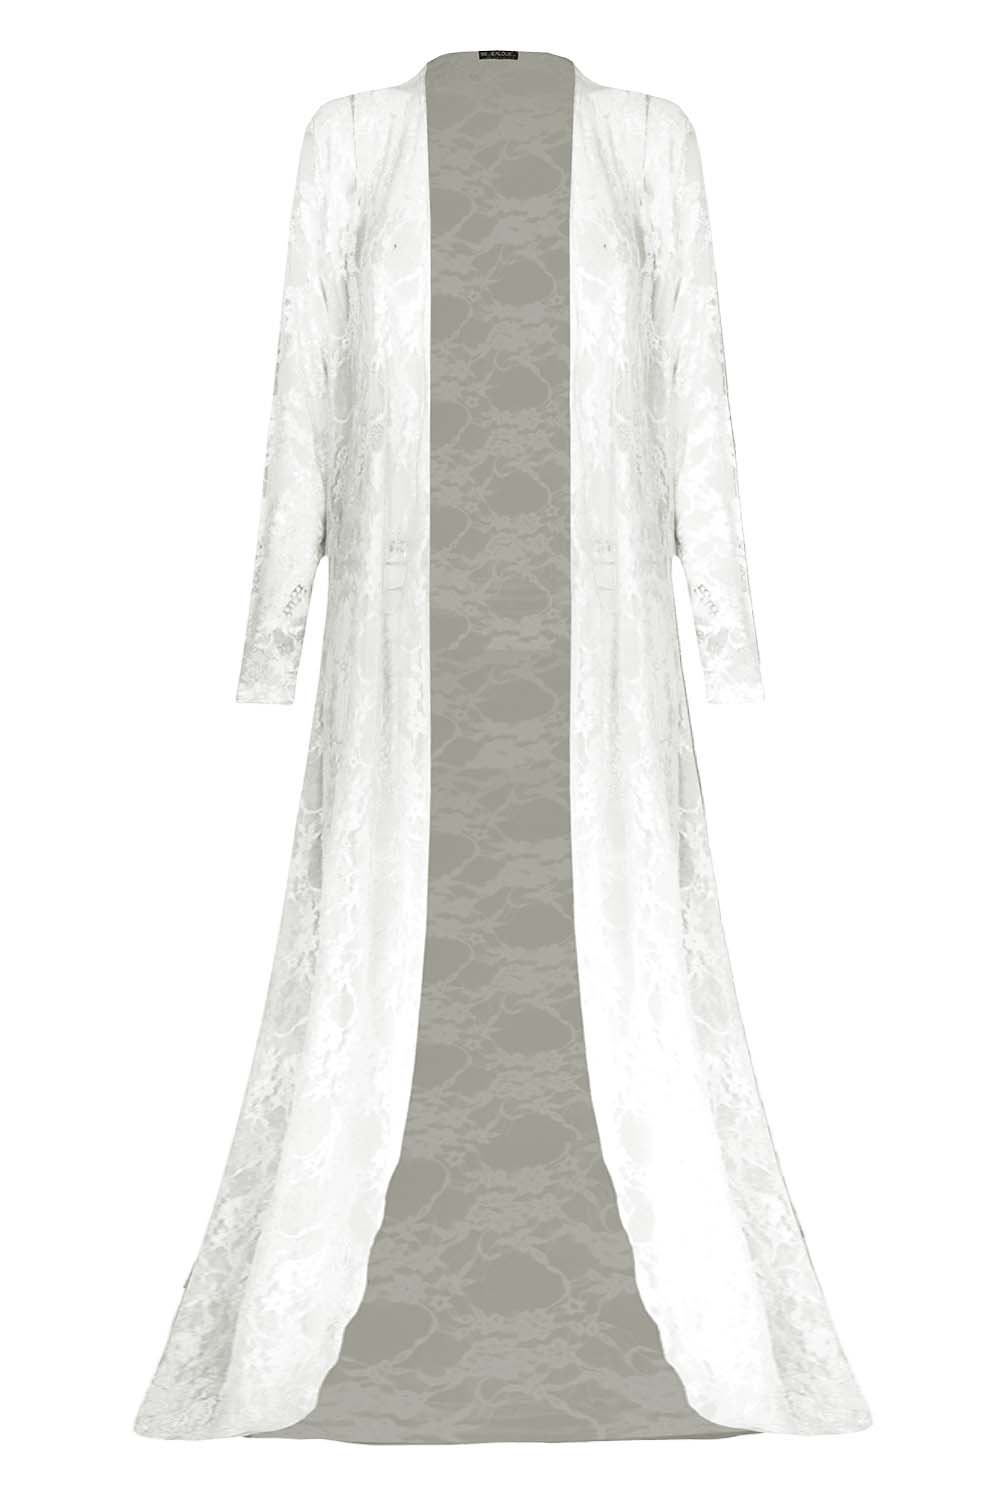 Womens Floral Lace Front Open Maxi Long Sleeves Waterfall Floaty Maxi Cardigan